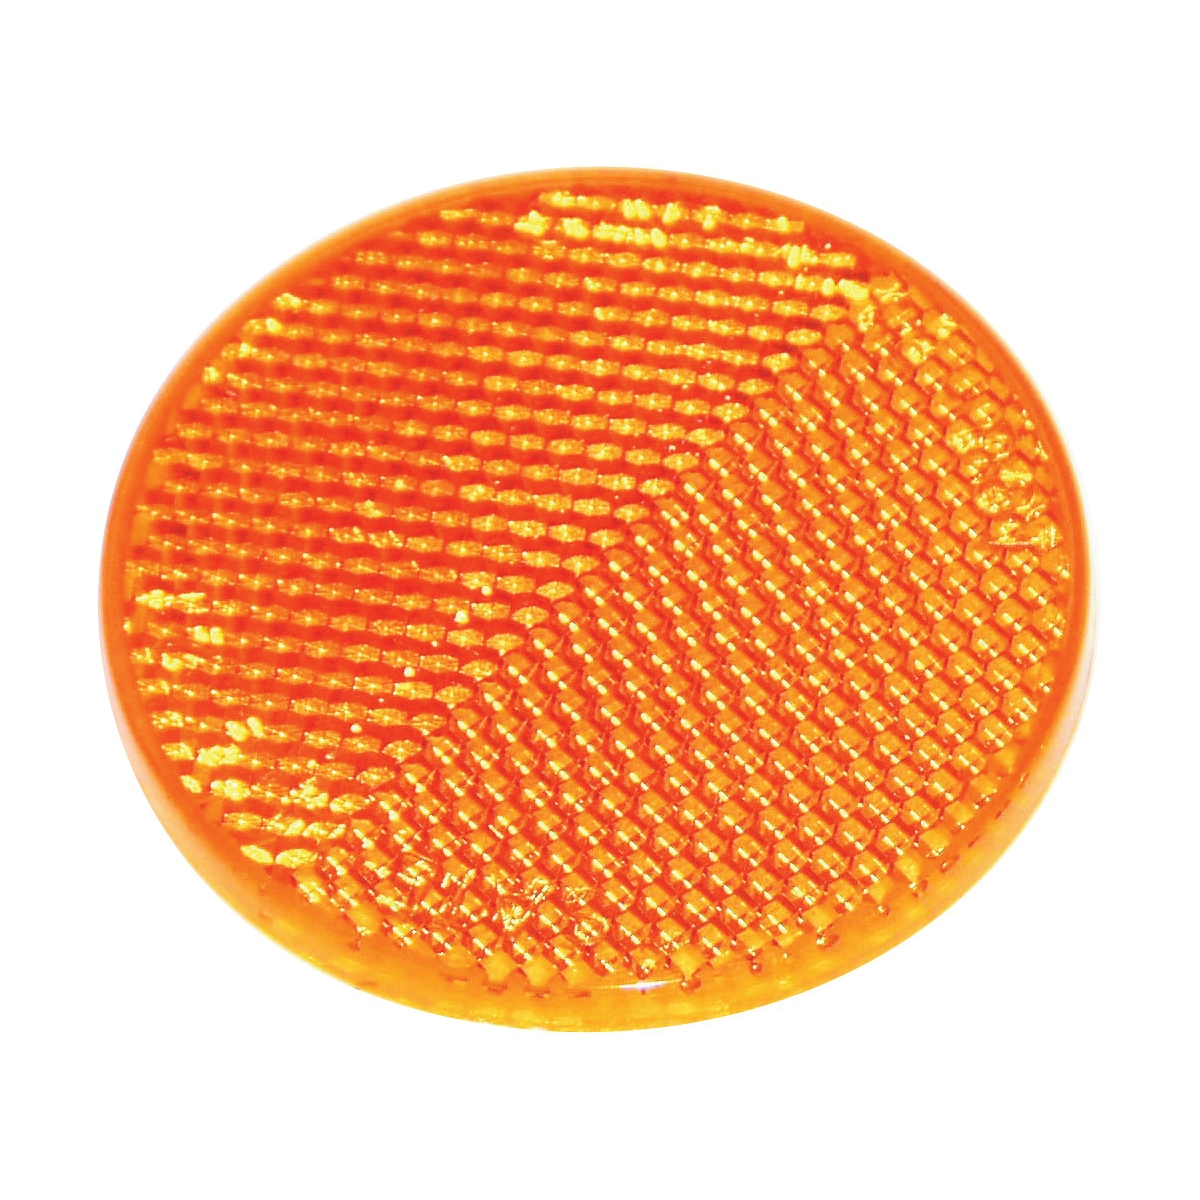 Picture of US Hardware RV-658C Safety Reflector, Amber Reflector, Plastic Reflector, Adhesive Mounting